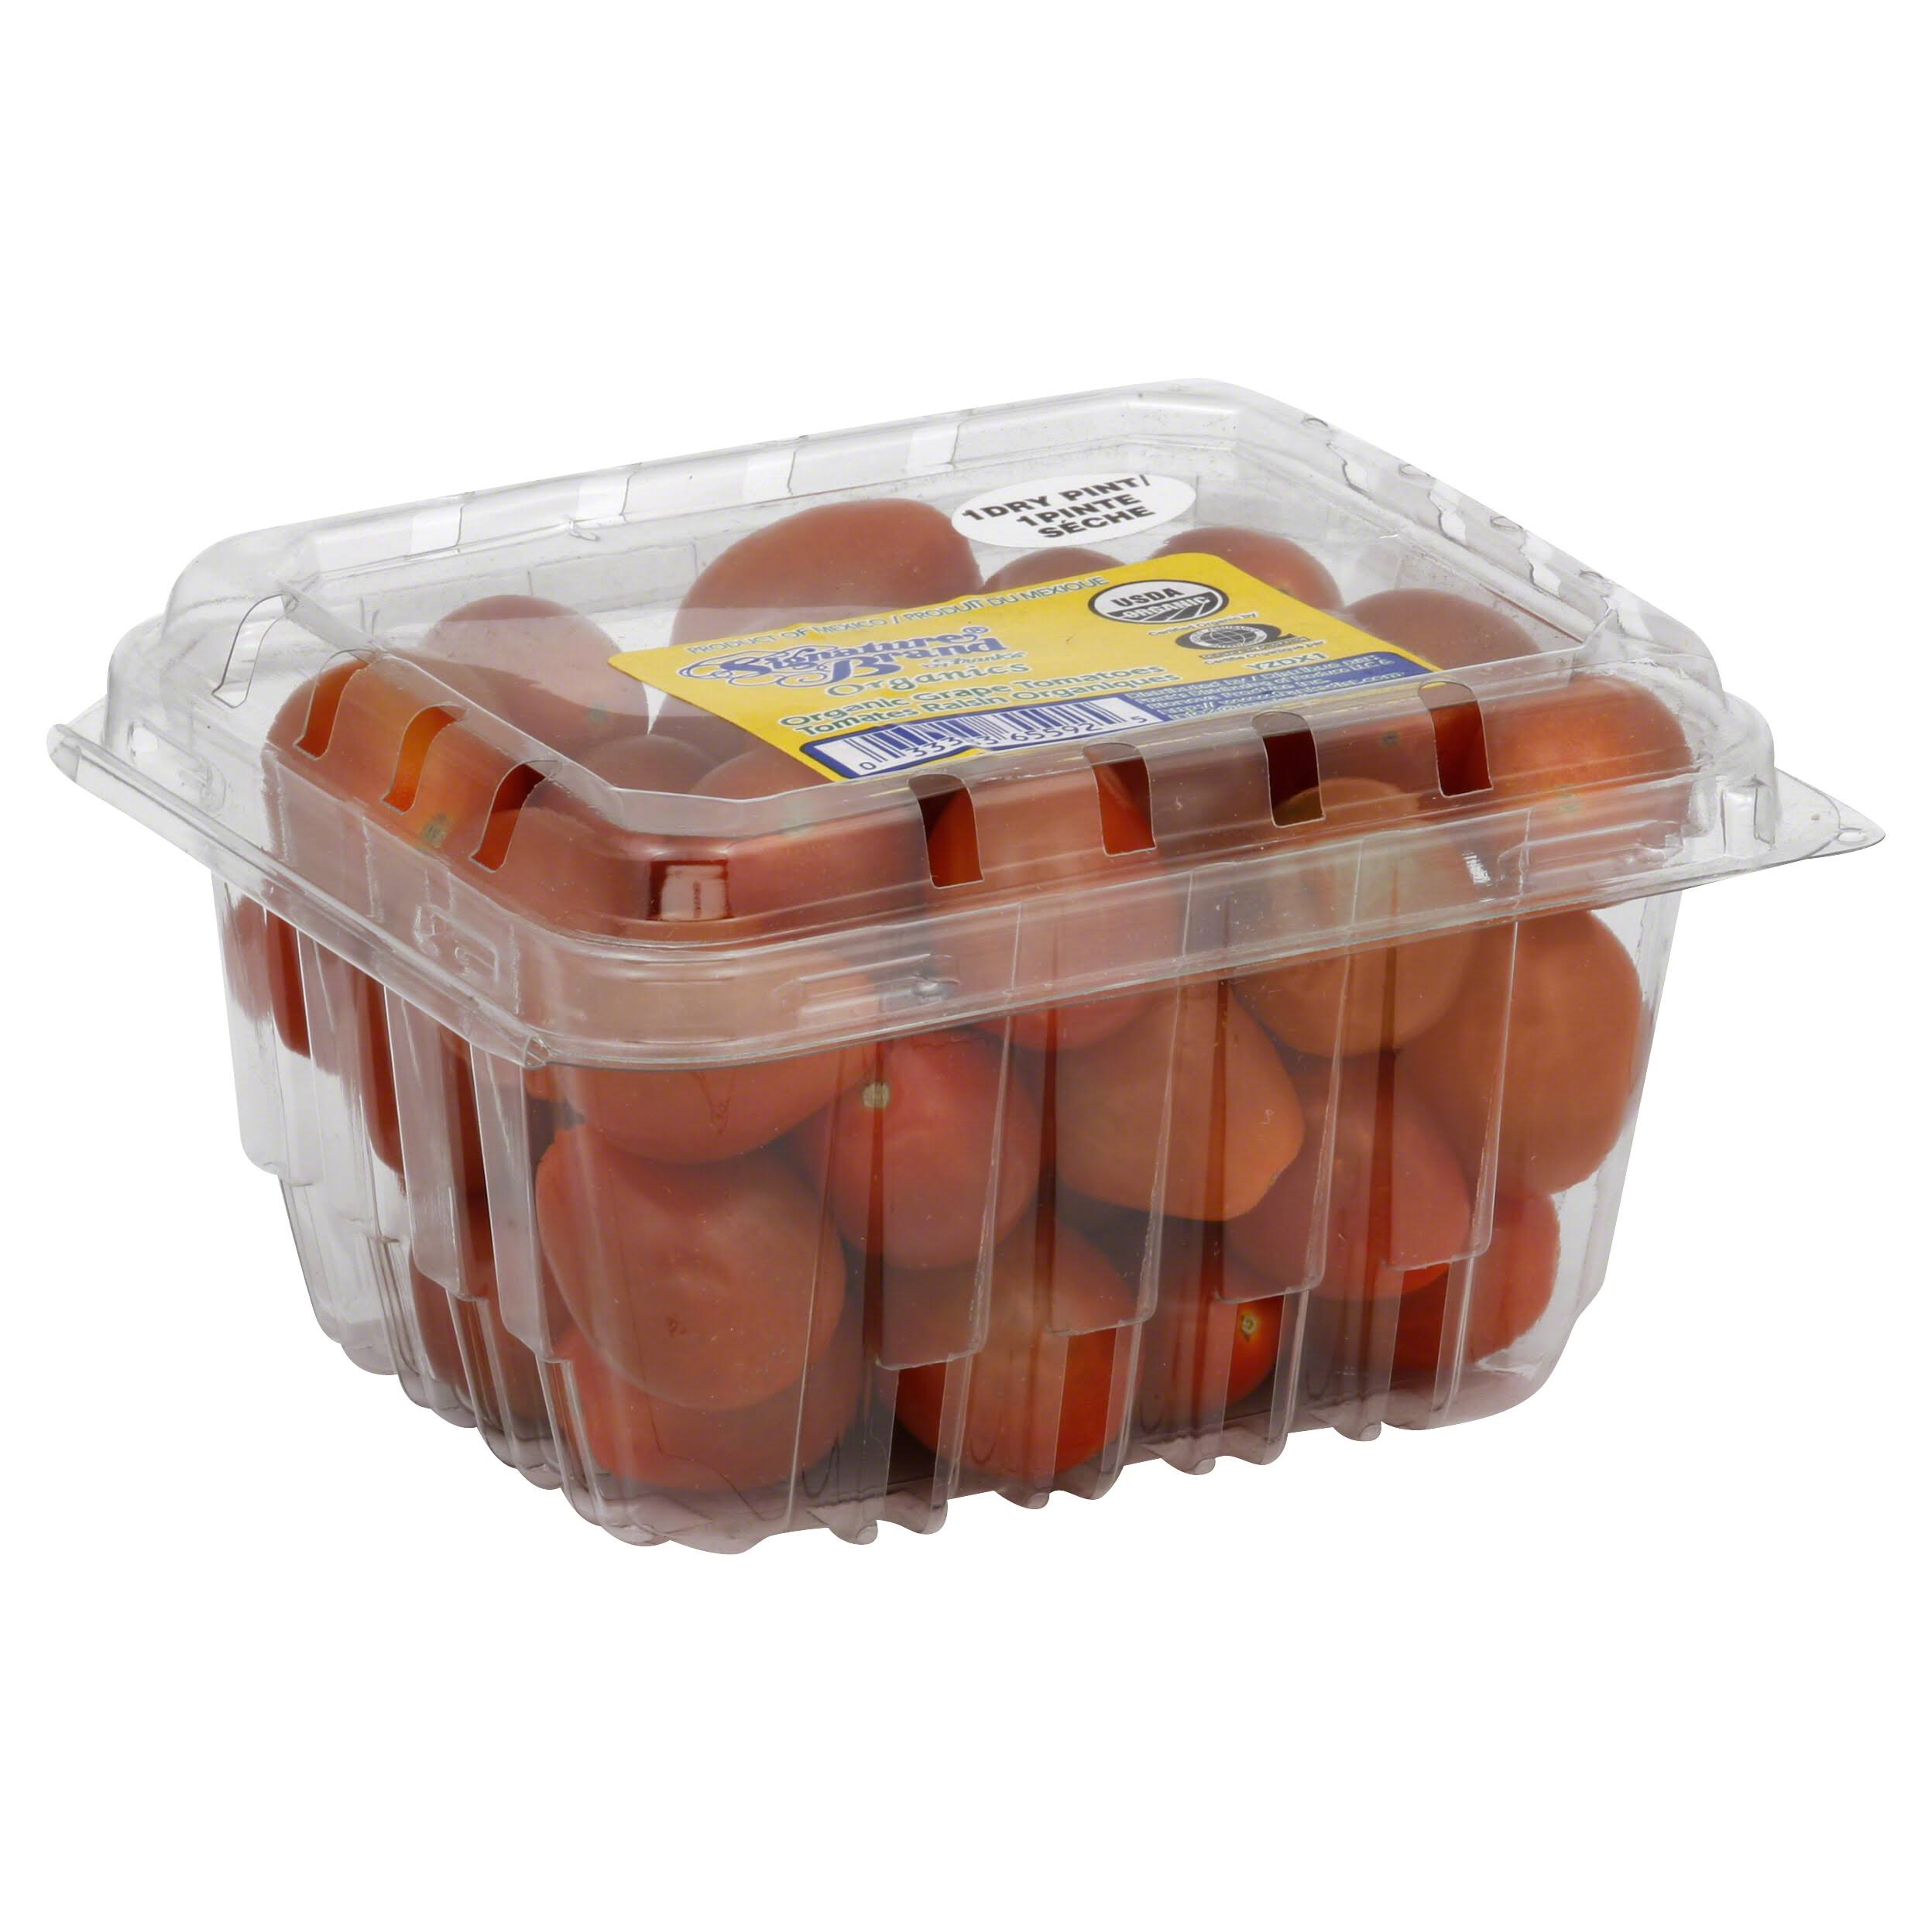 Signature Brand Organics Grape Tomatoes, Organic - 1 pt